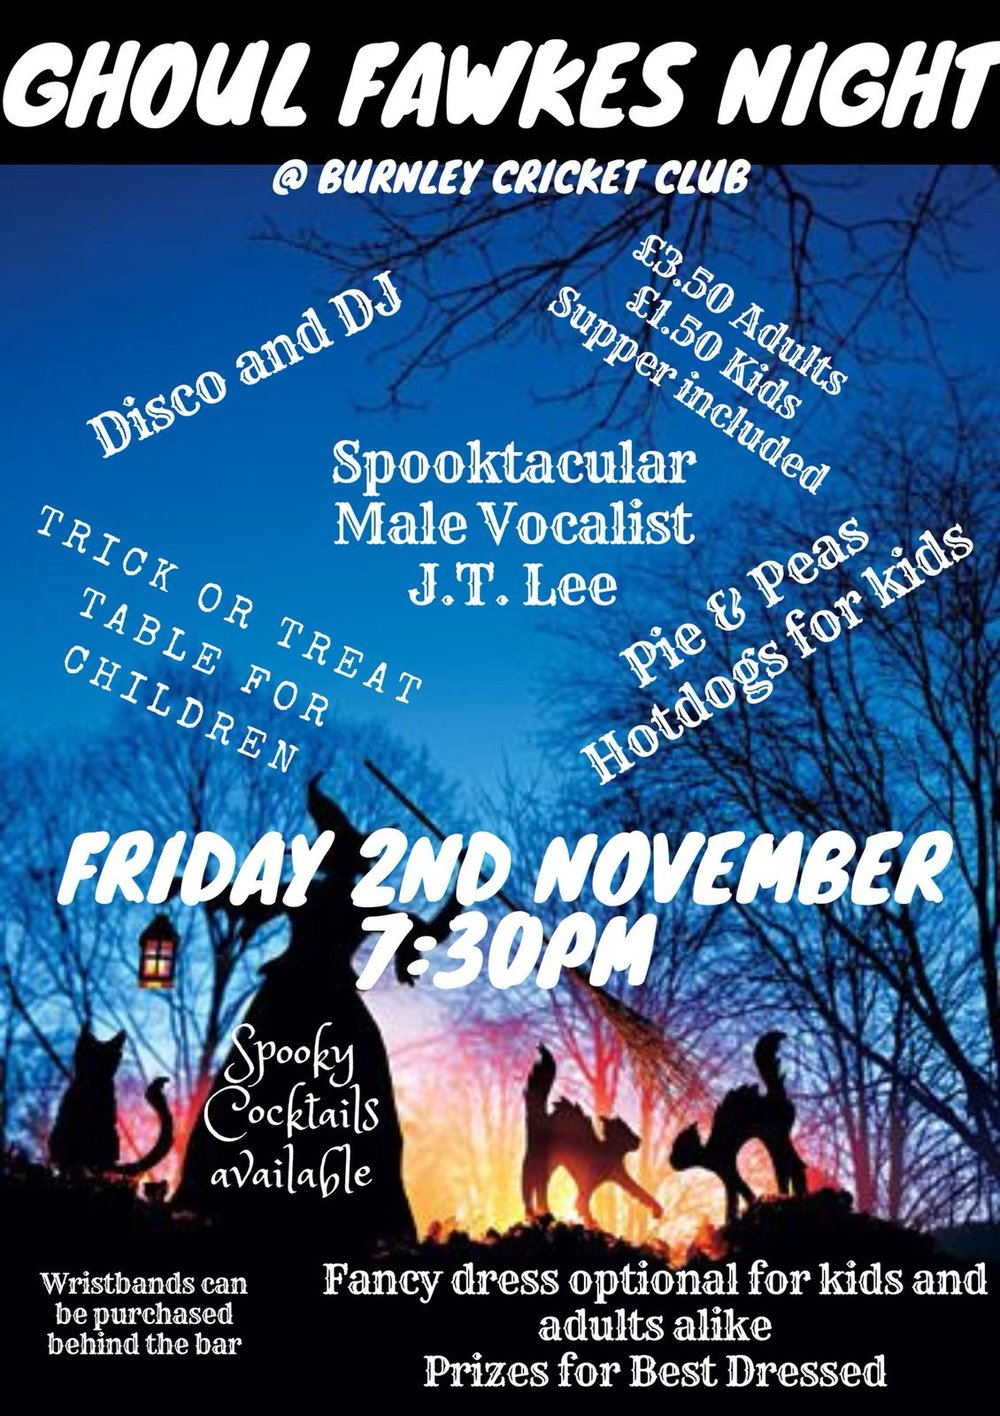 ghoul fawkes party night poster at burnley cricket club